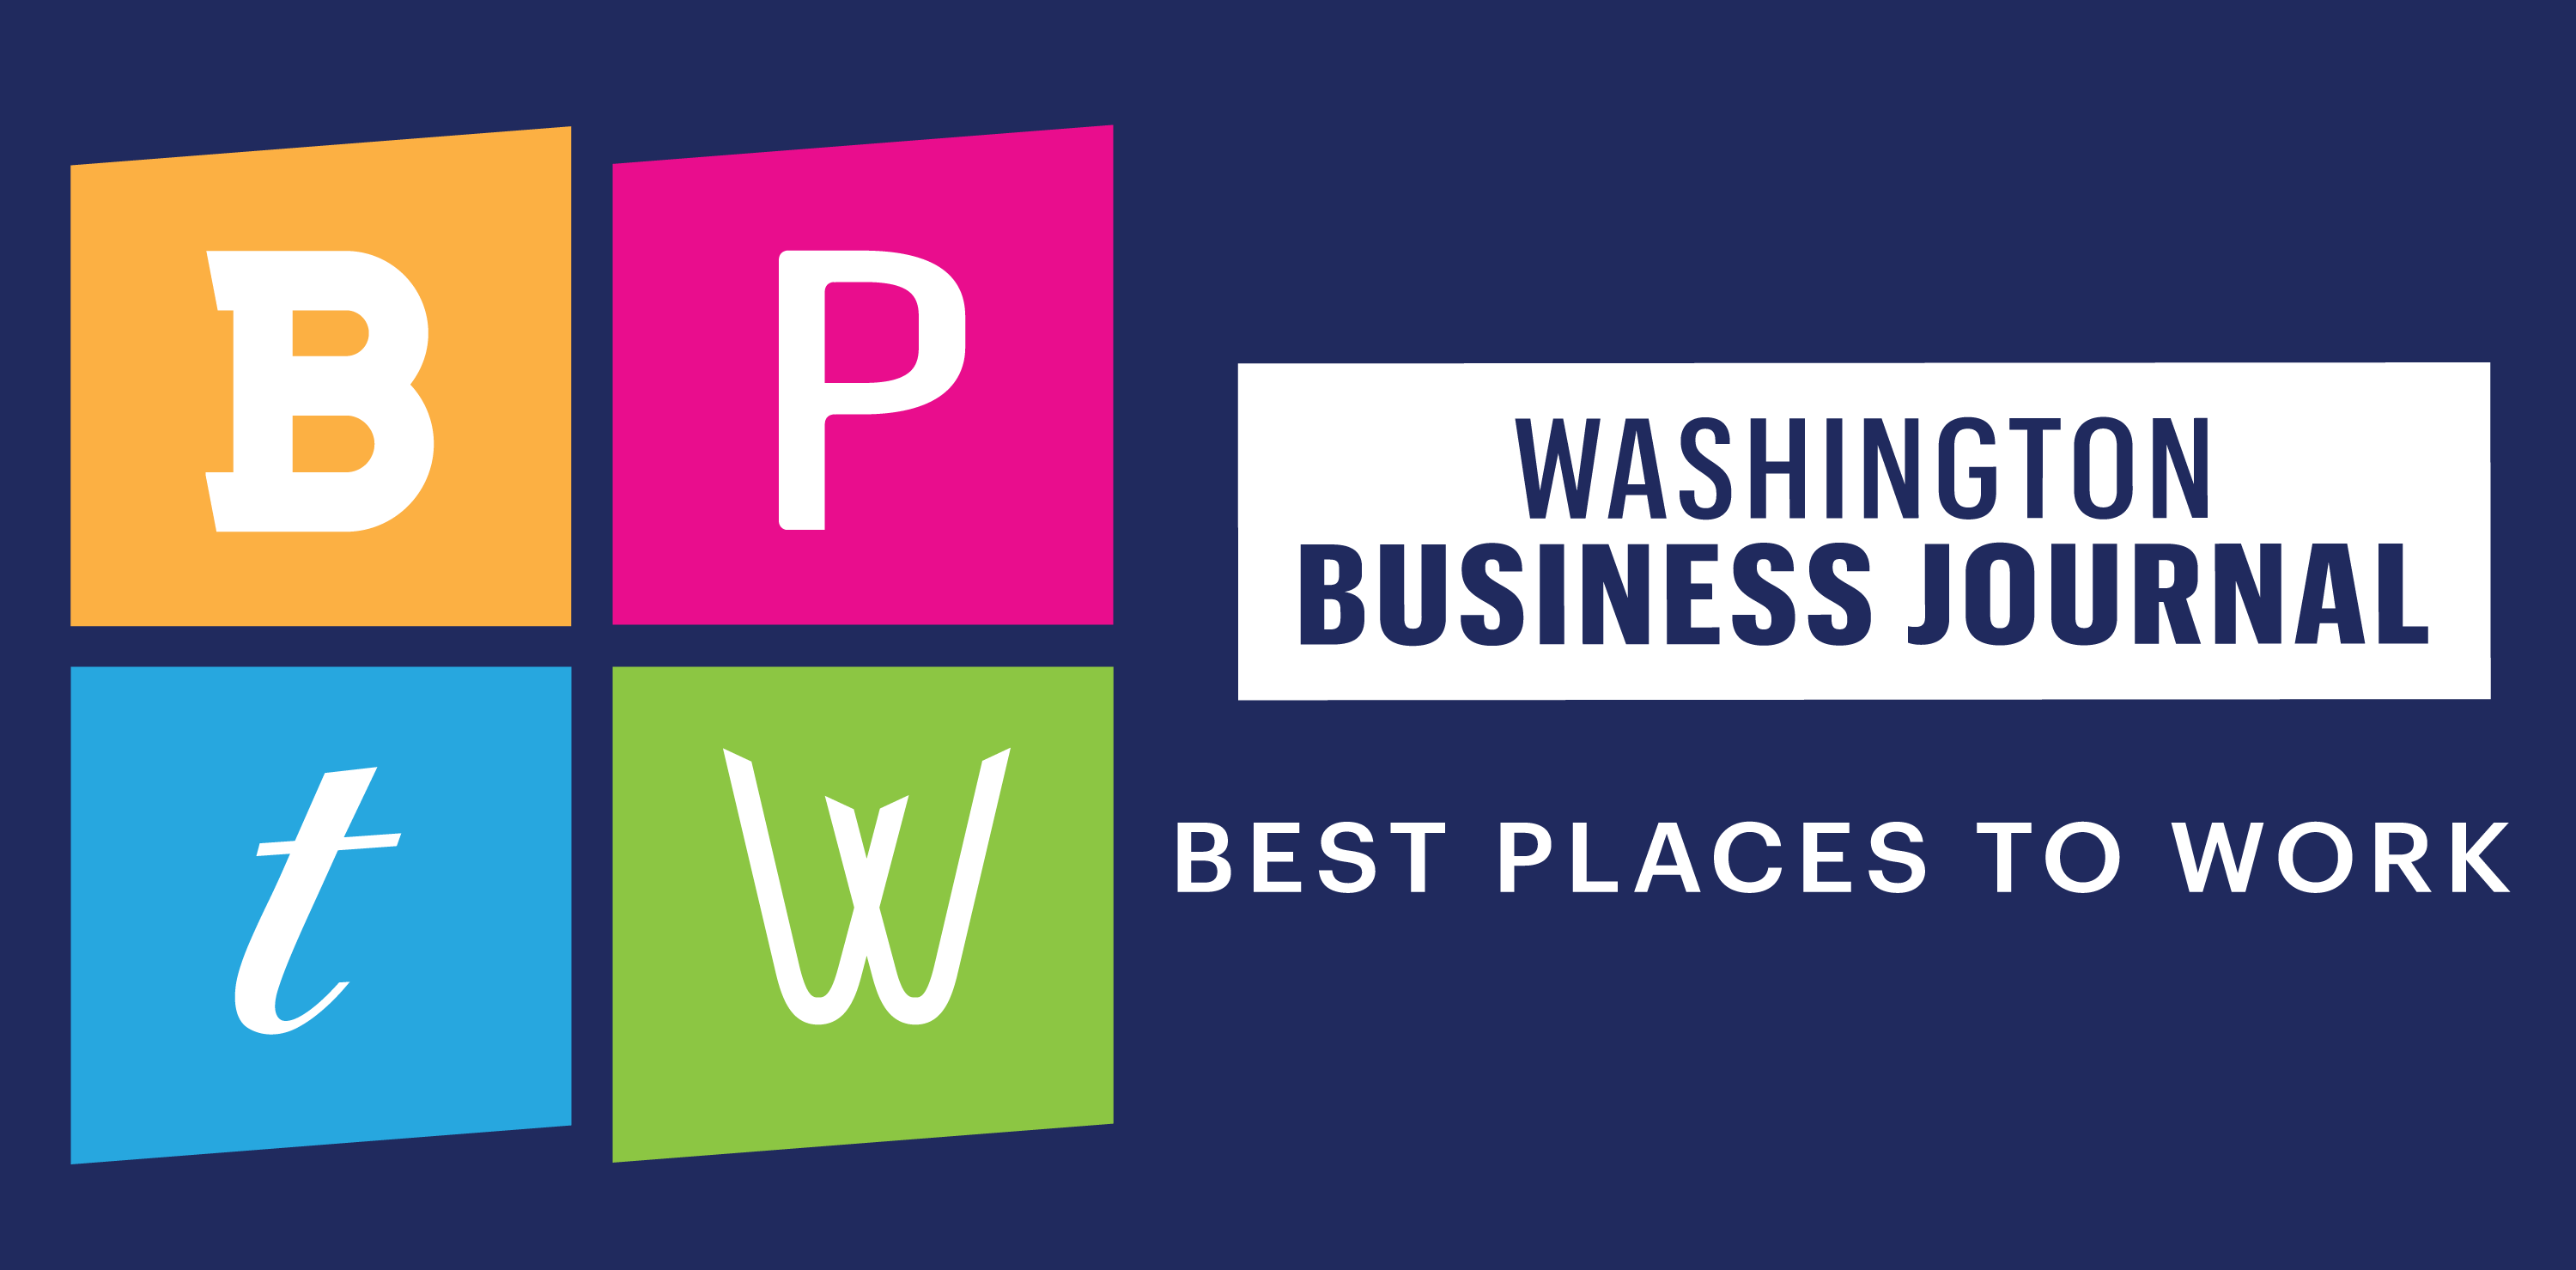 Cetrom Again Recognized as One of the Best Places to Work in the Greater Washington, D.C. Region